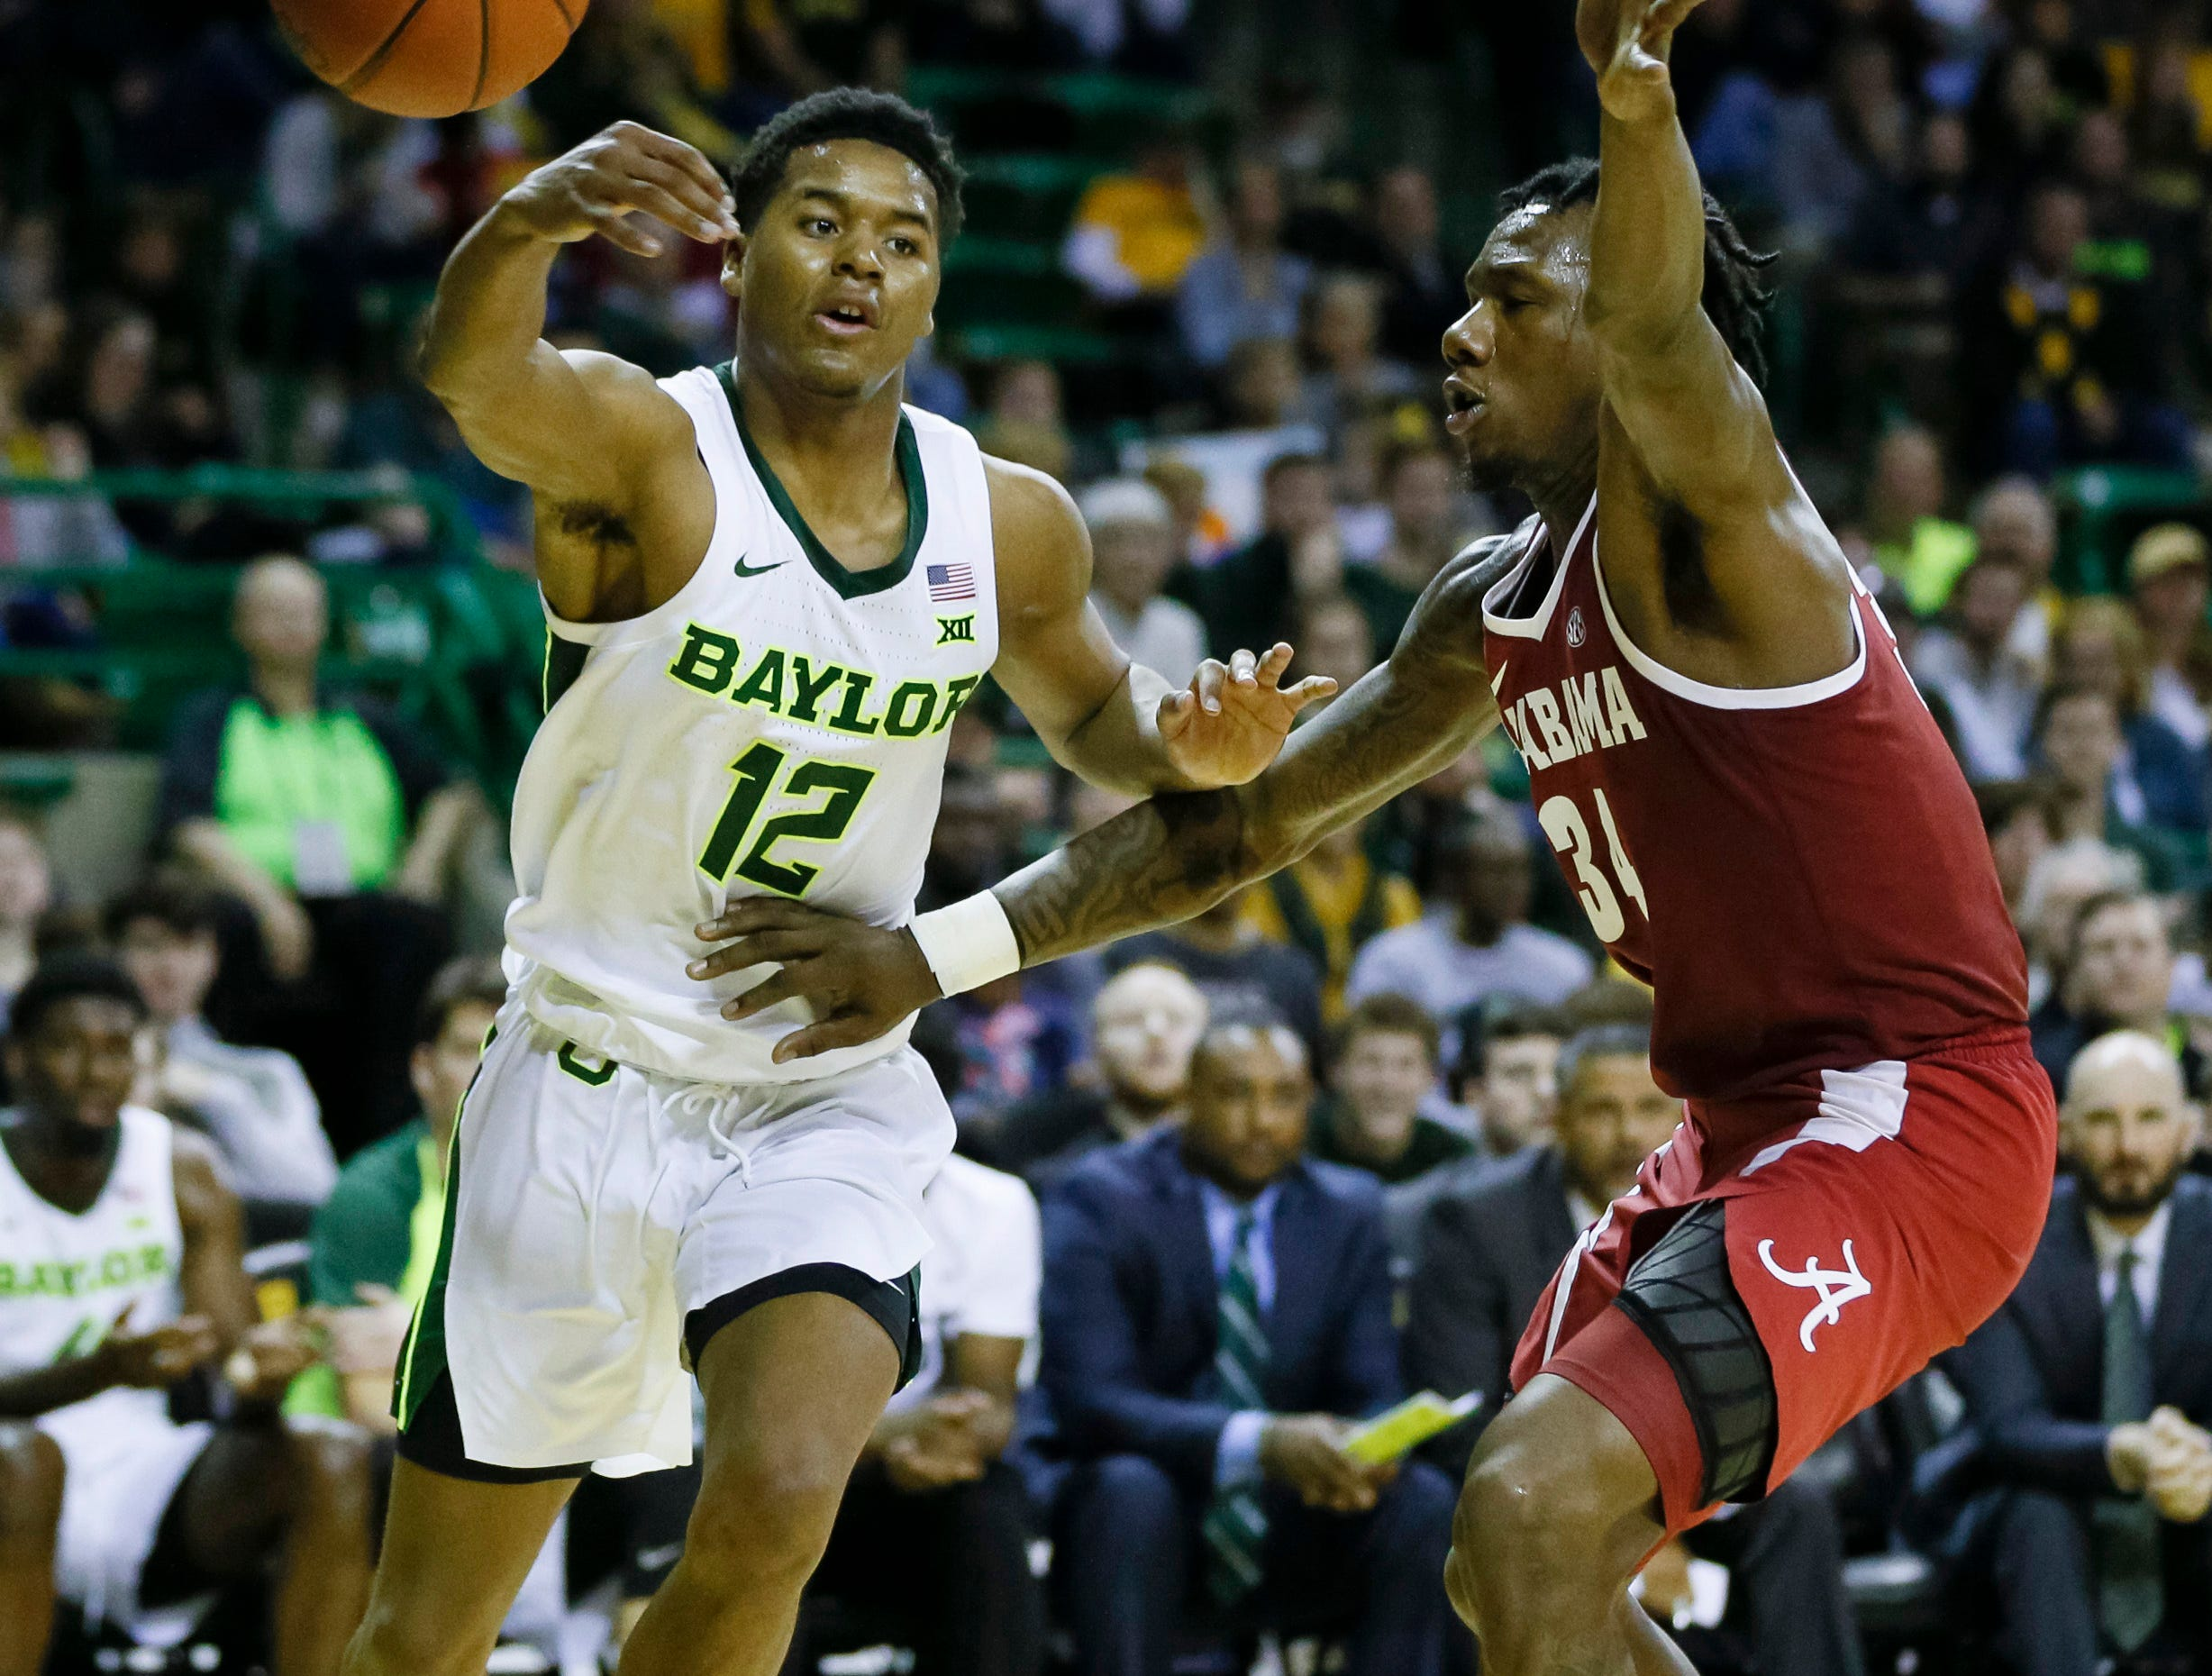 Jan 26, 2019; Waco, TX, USA; Baylor Bears guard Jared Butler (12) passes the ball around Alabama Crimson Tide guard Tevin Mack (34) during the second half at Ferrell Center. Mandatory Credit: Ray Carlin-USA TODAY Sports